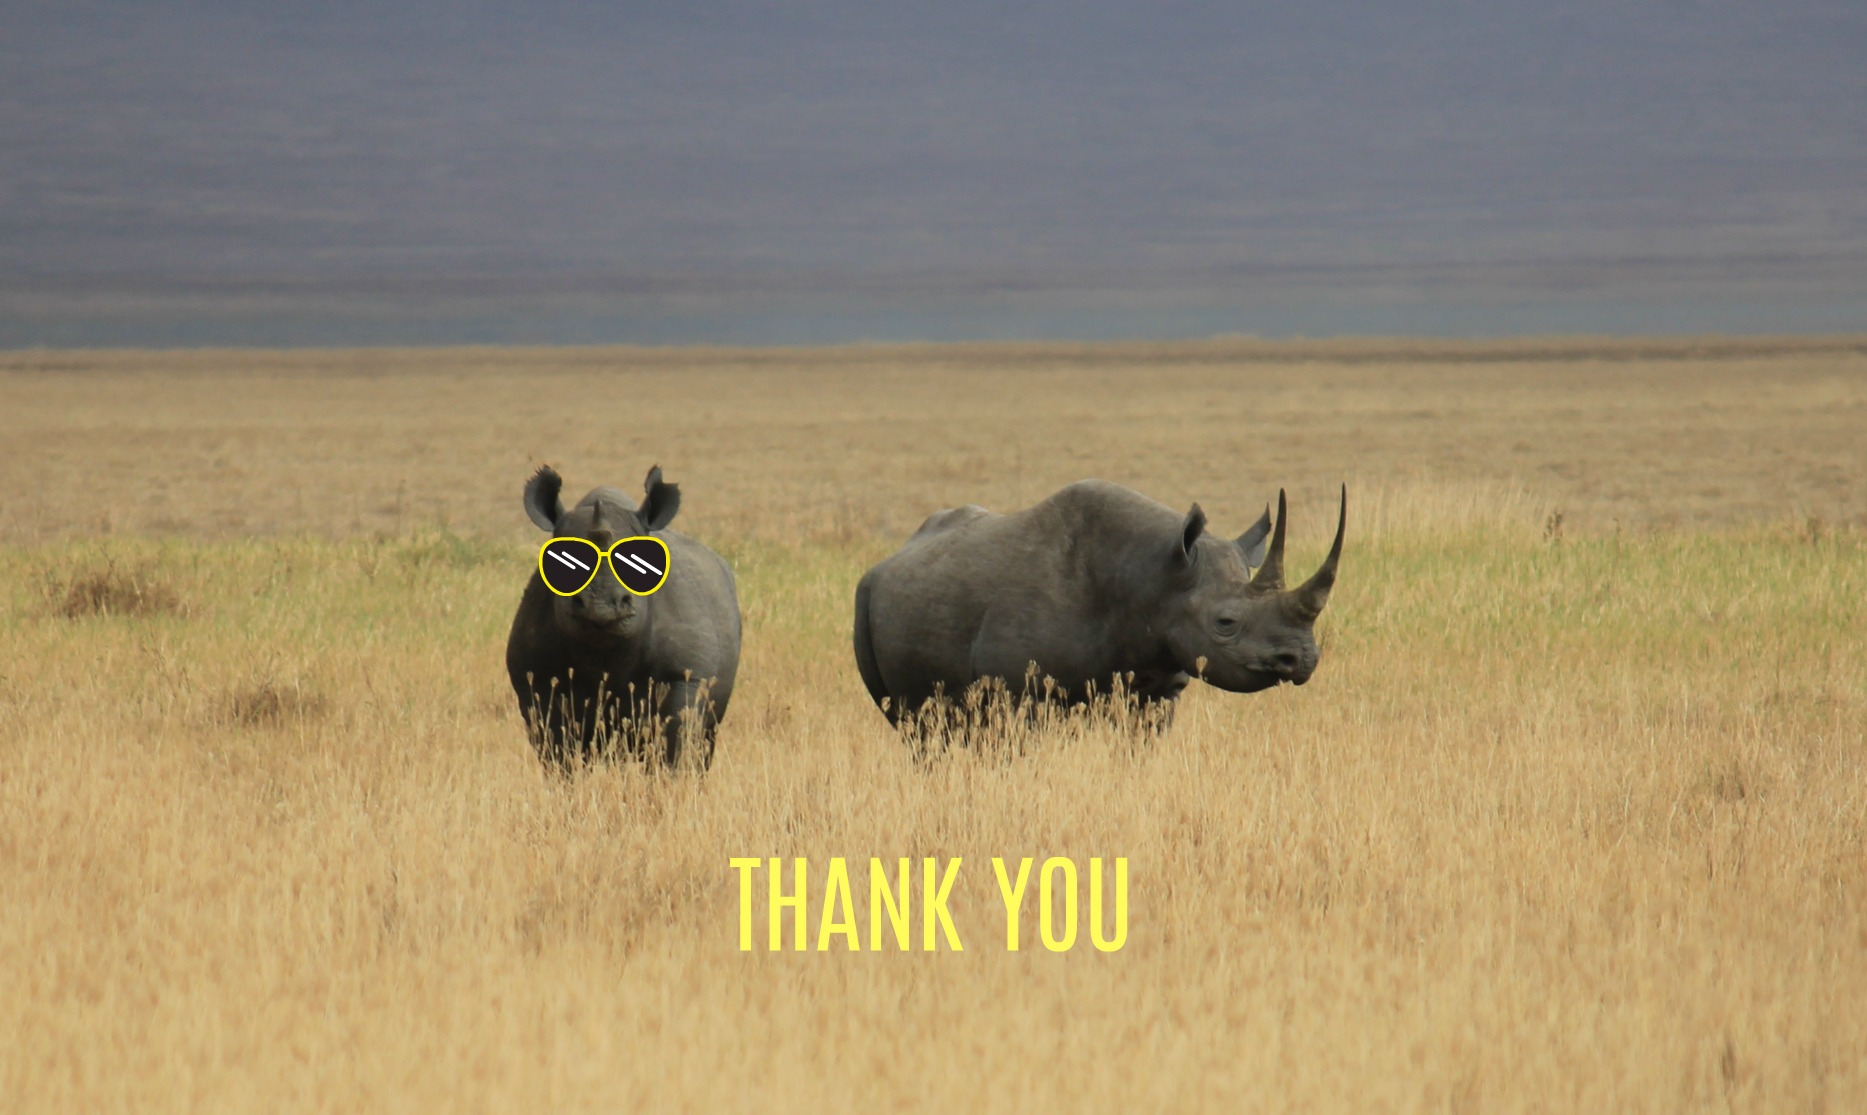 rhino thank you.jpg